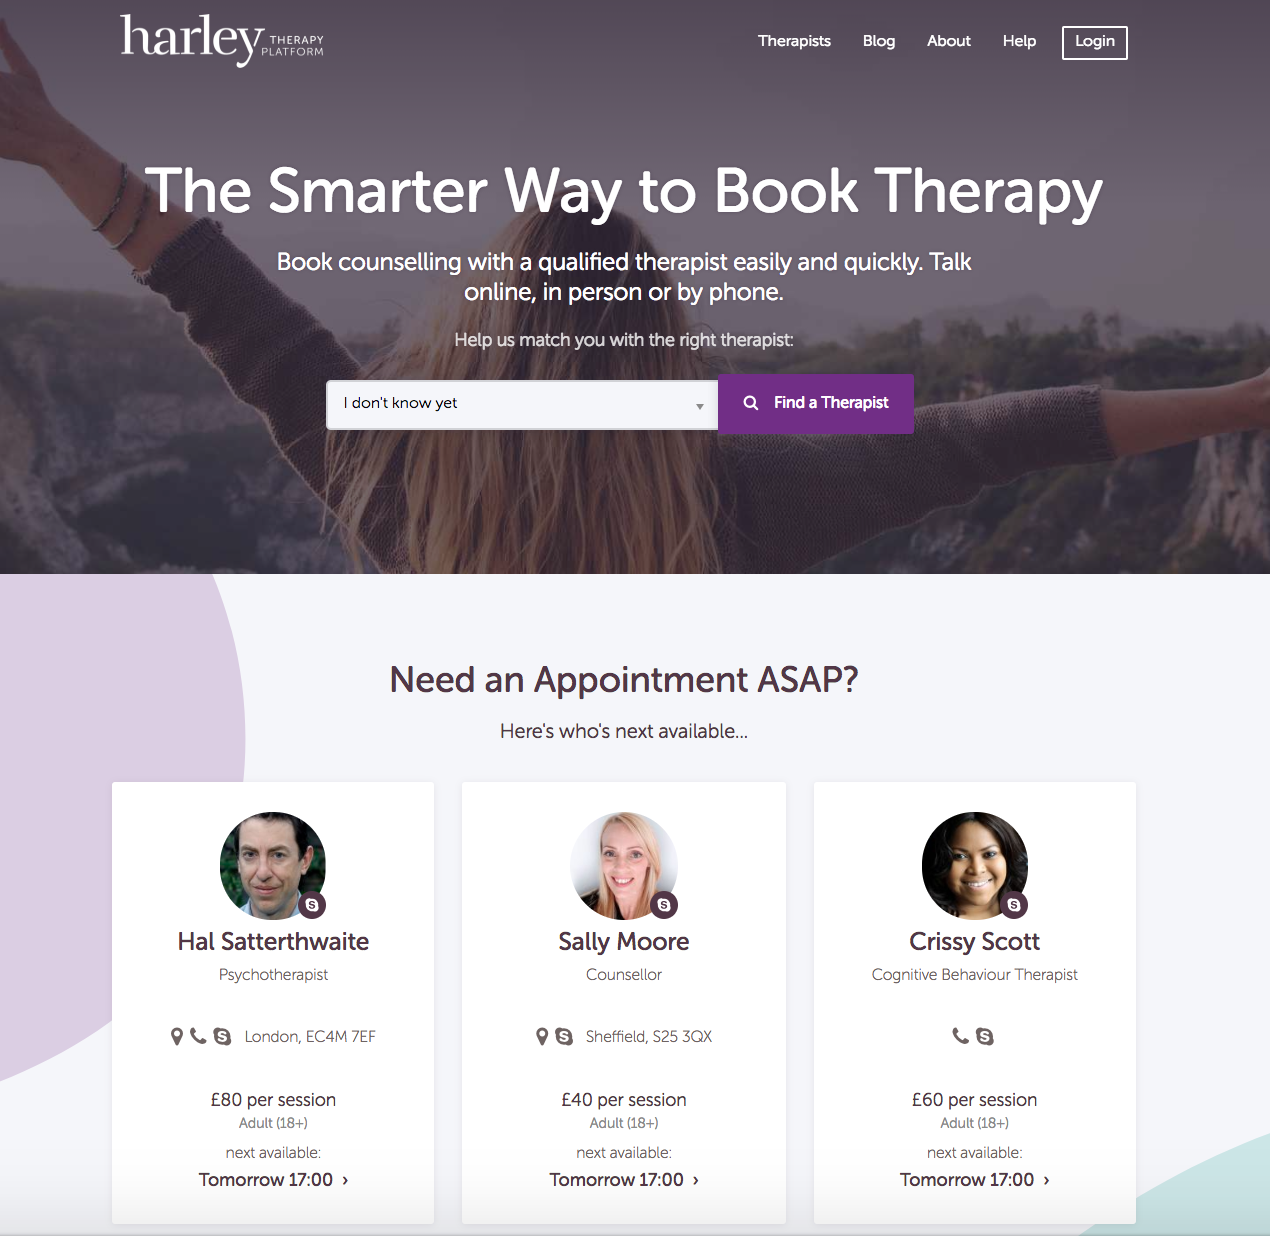 HarleyTherapy.com - Everyone needs a therapist